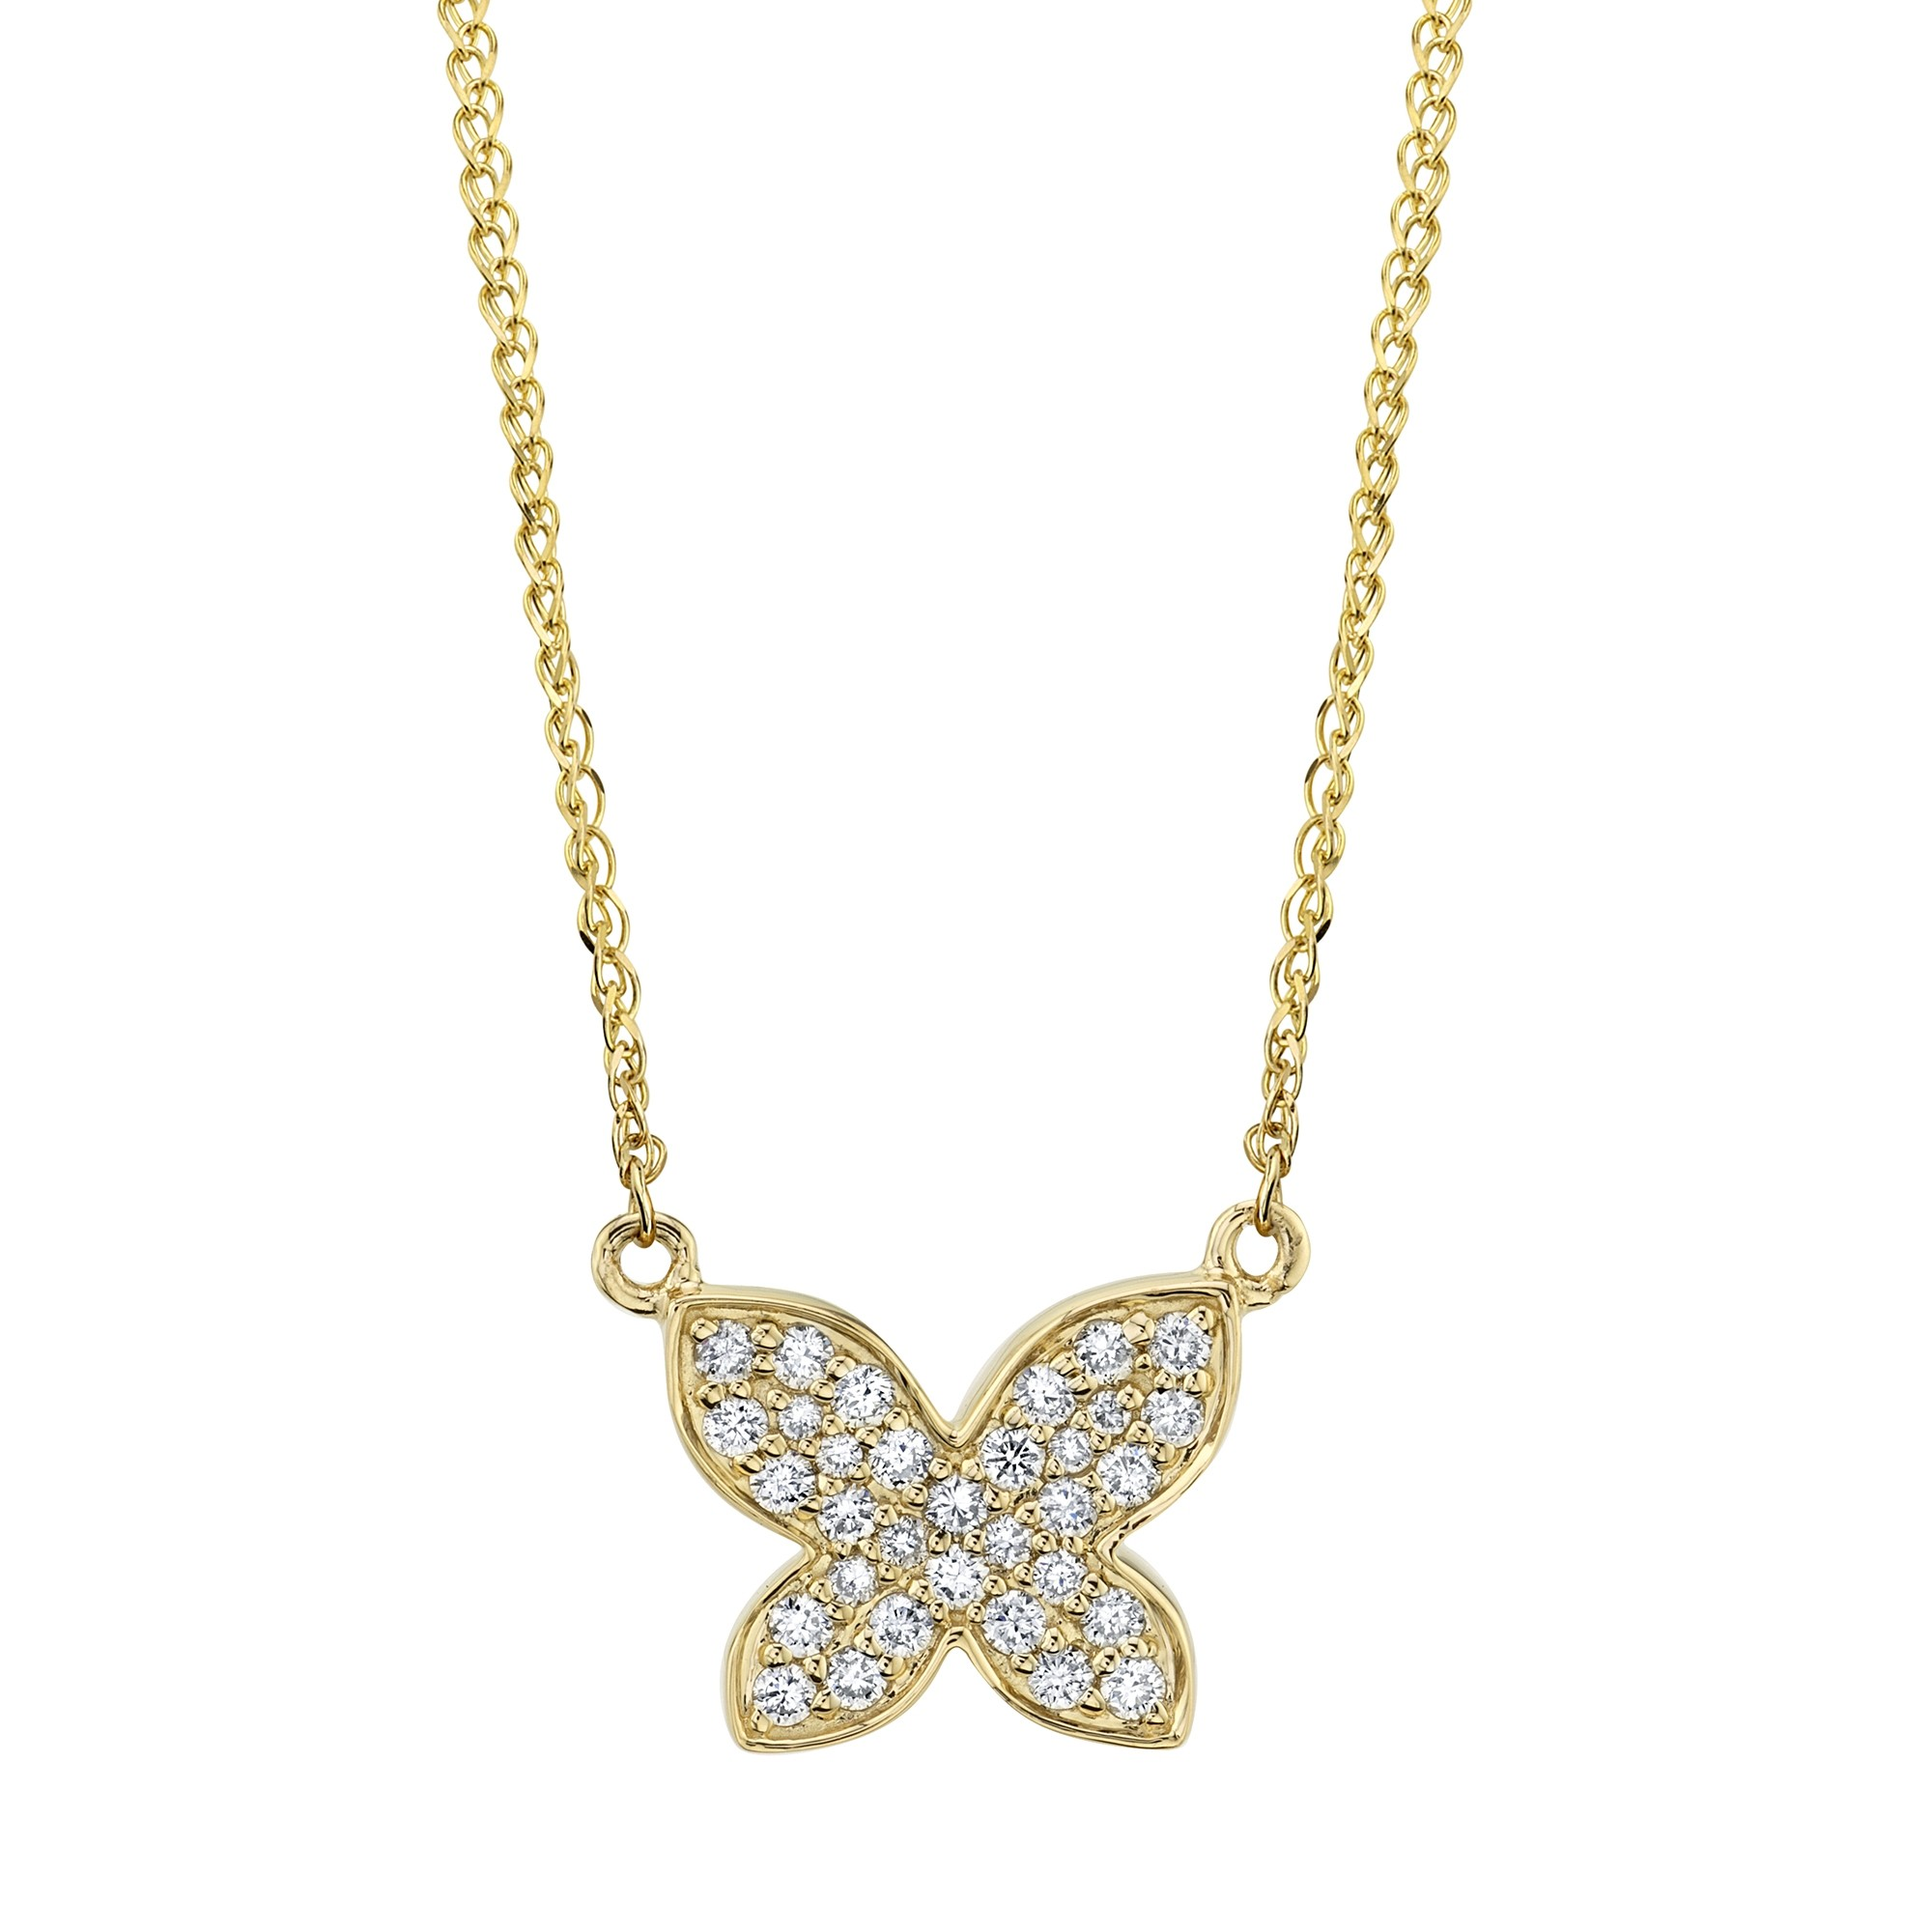 14k Yellow Gold Diamond Floating Butterfly Necklace